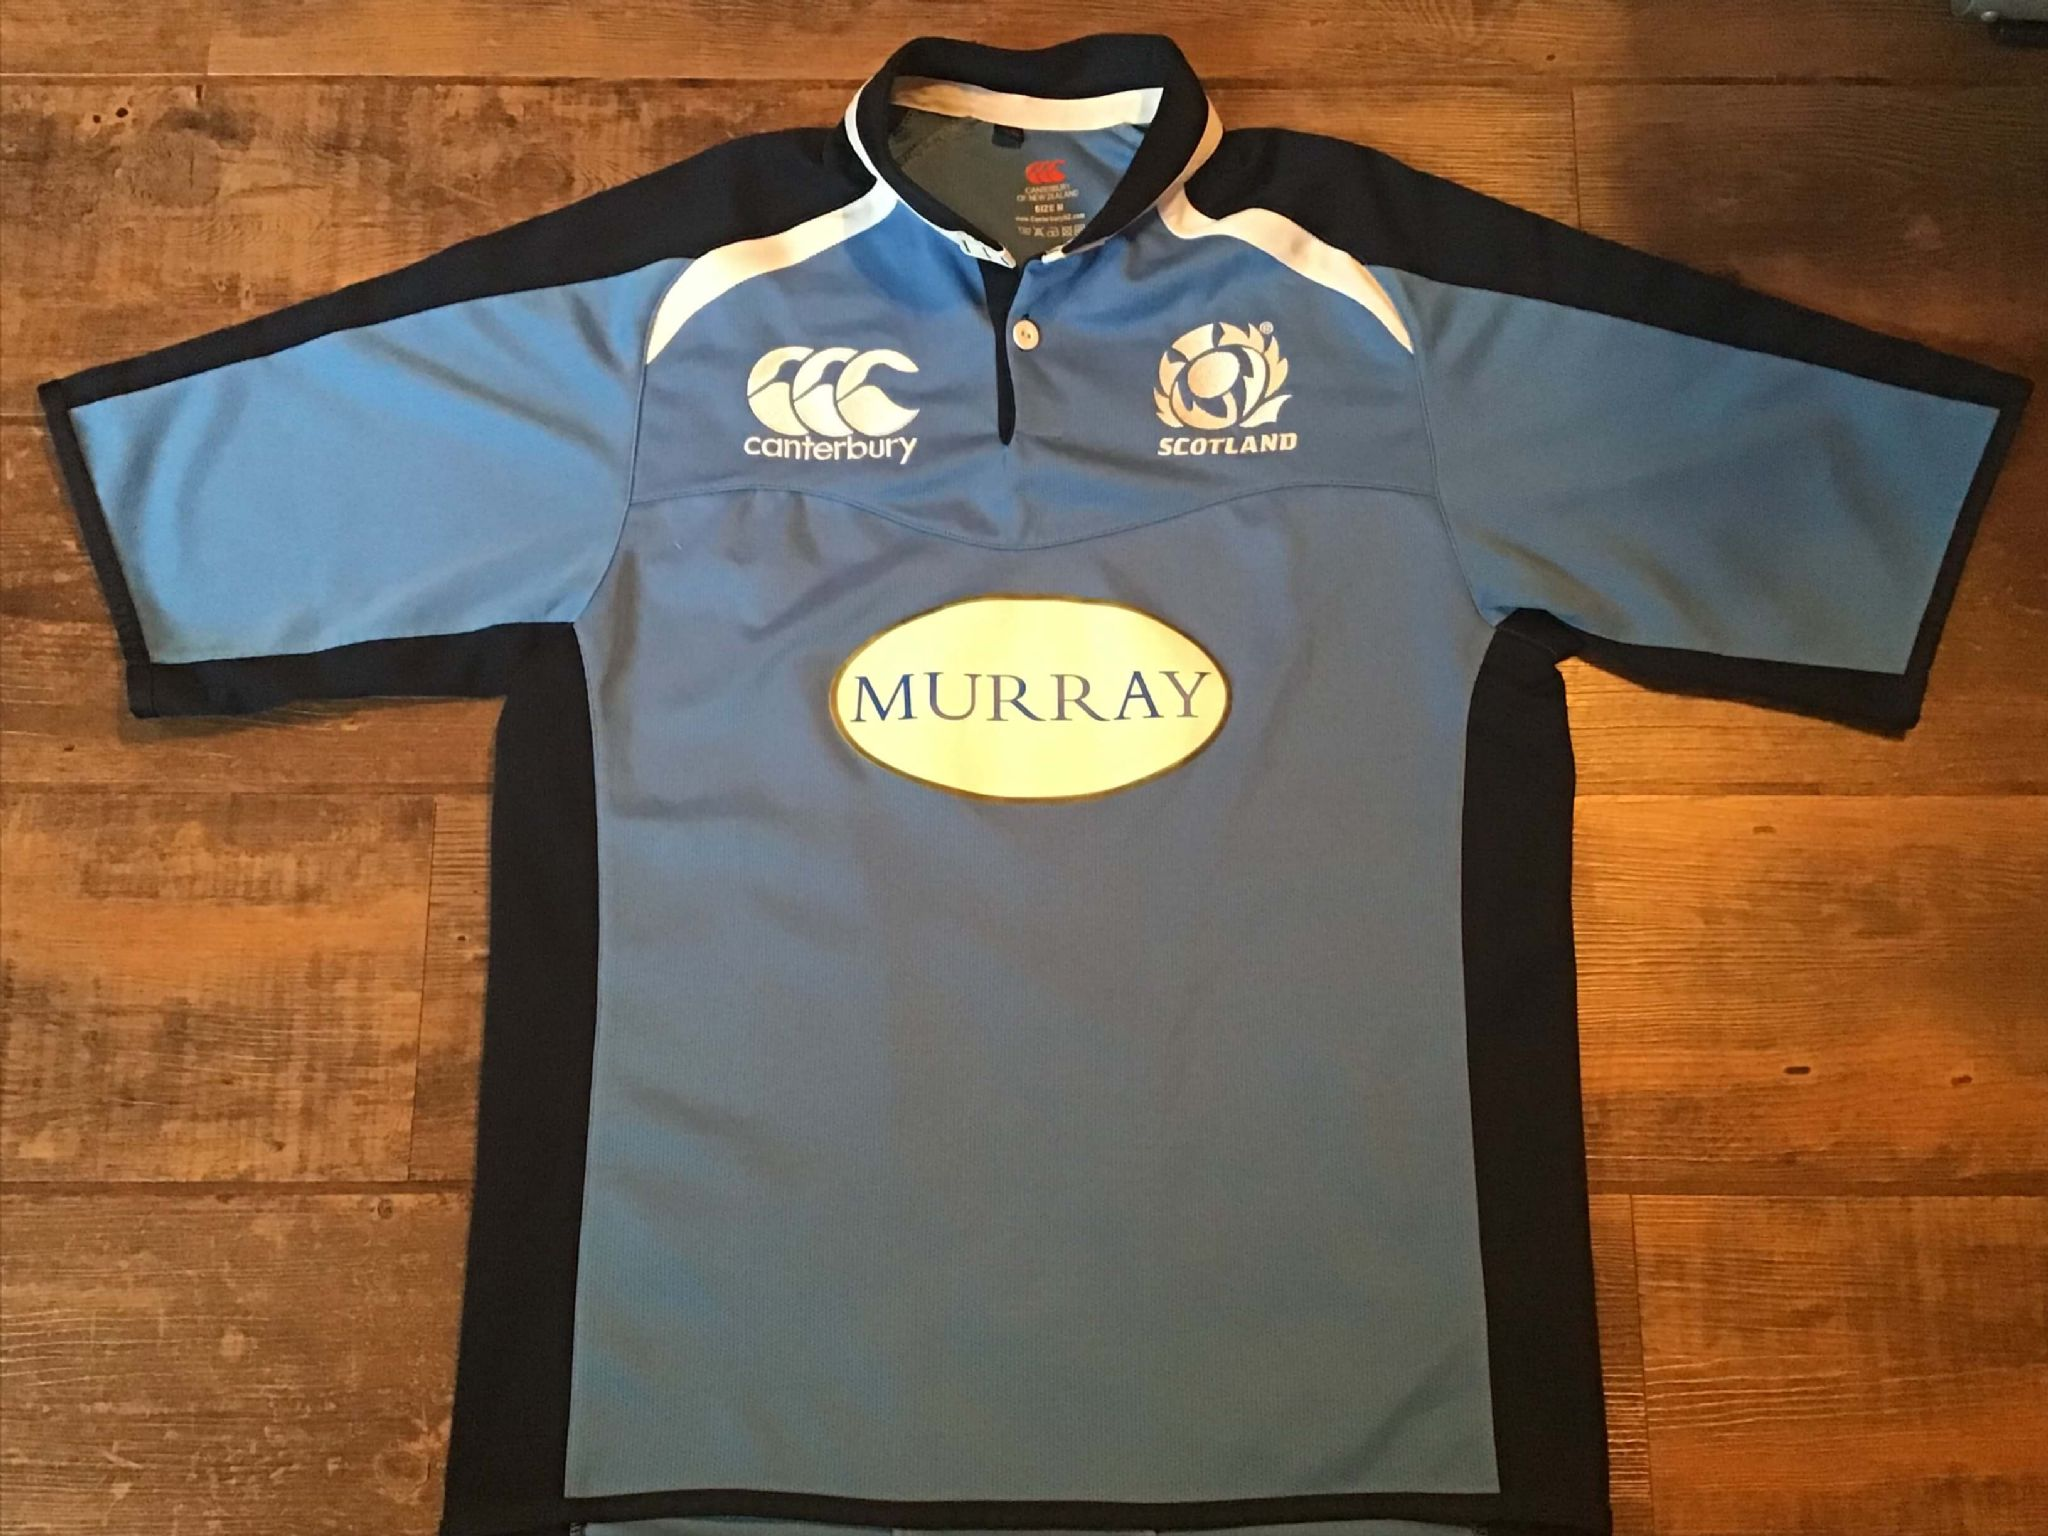 a5dbed45332 Classic Rugby Shirts | 2008 Scotland Vintage Old Jerseys